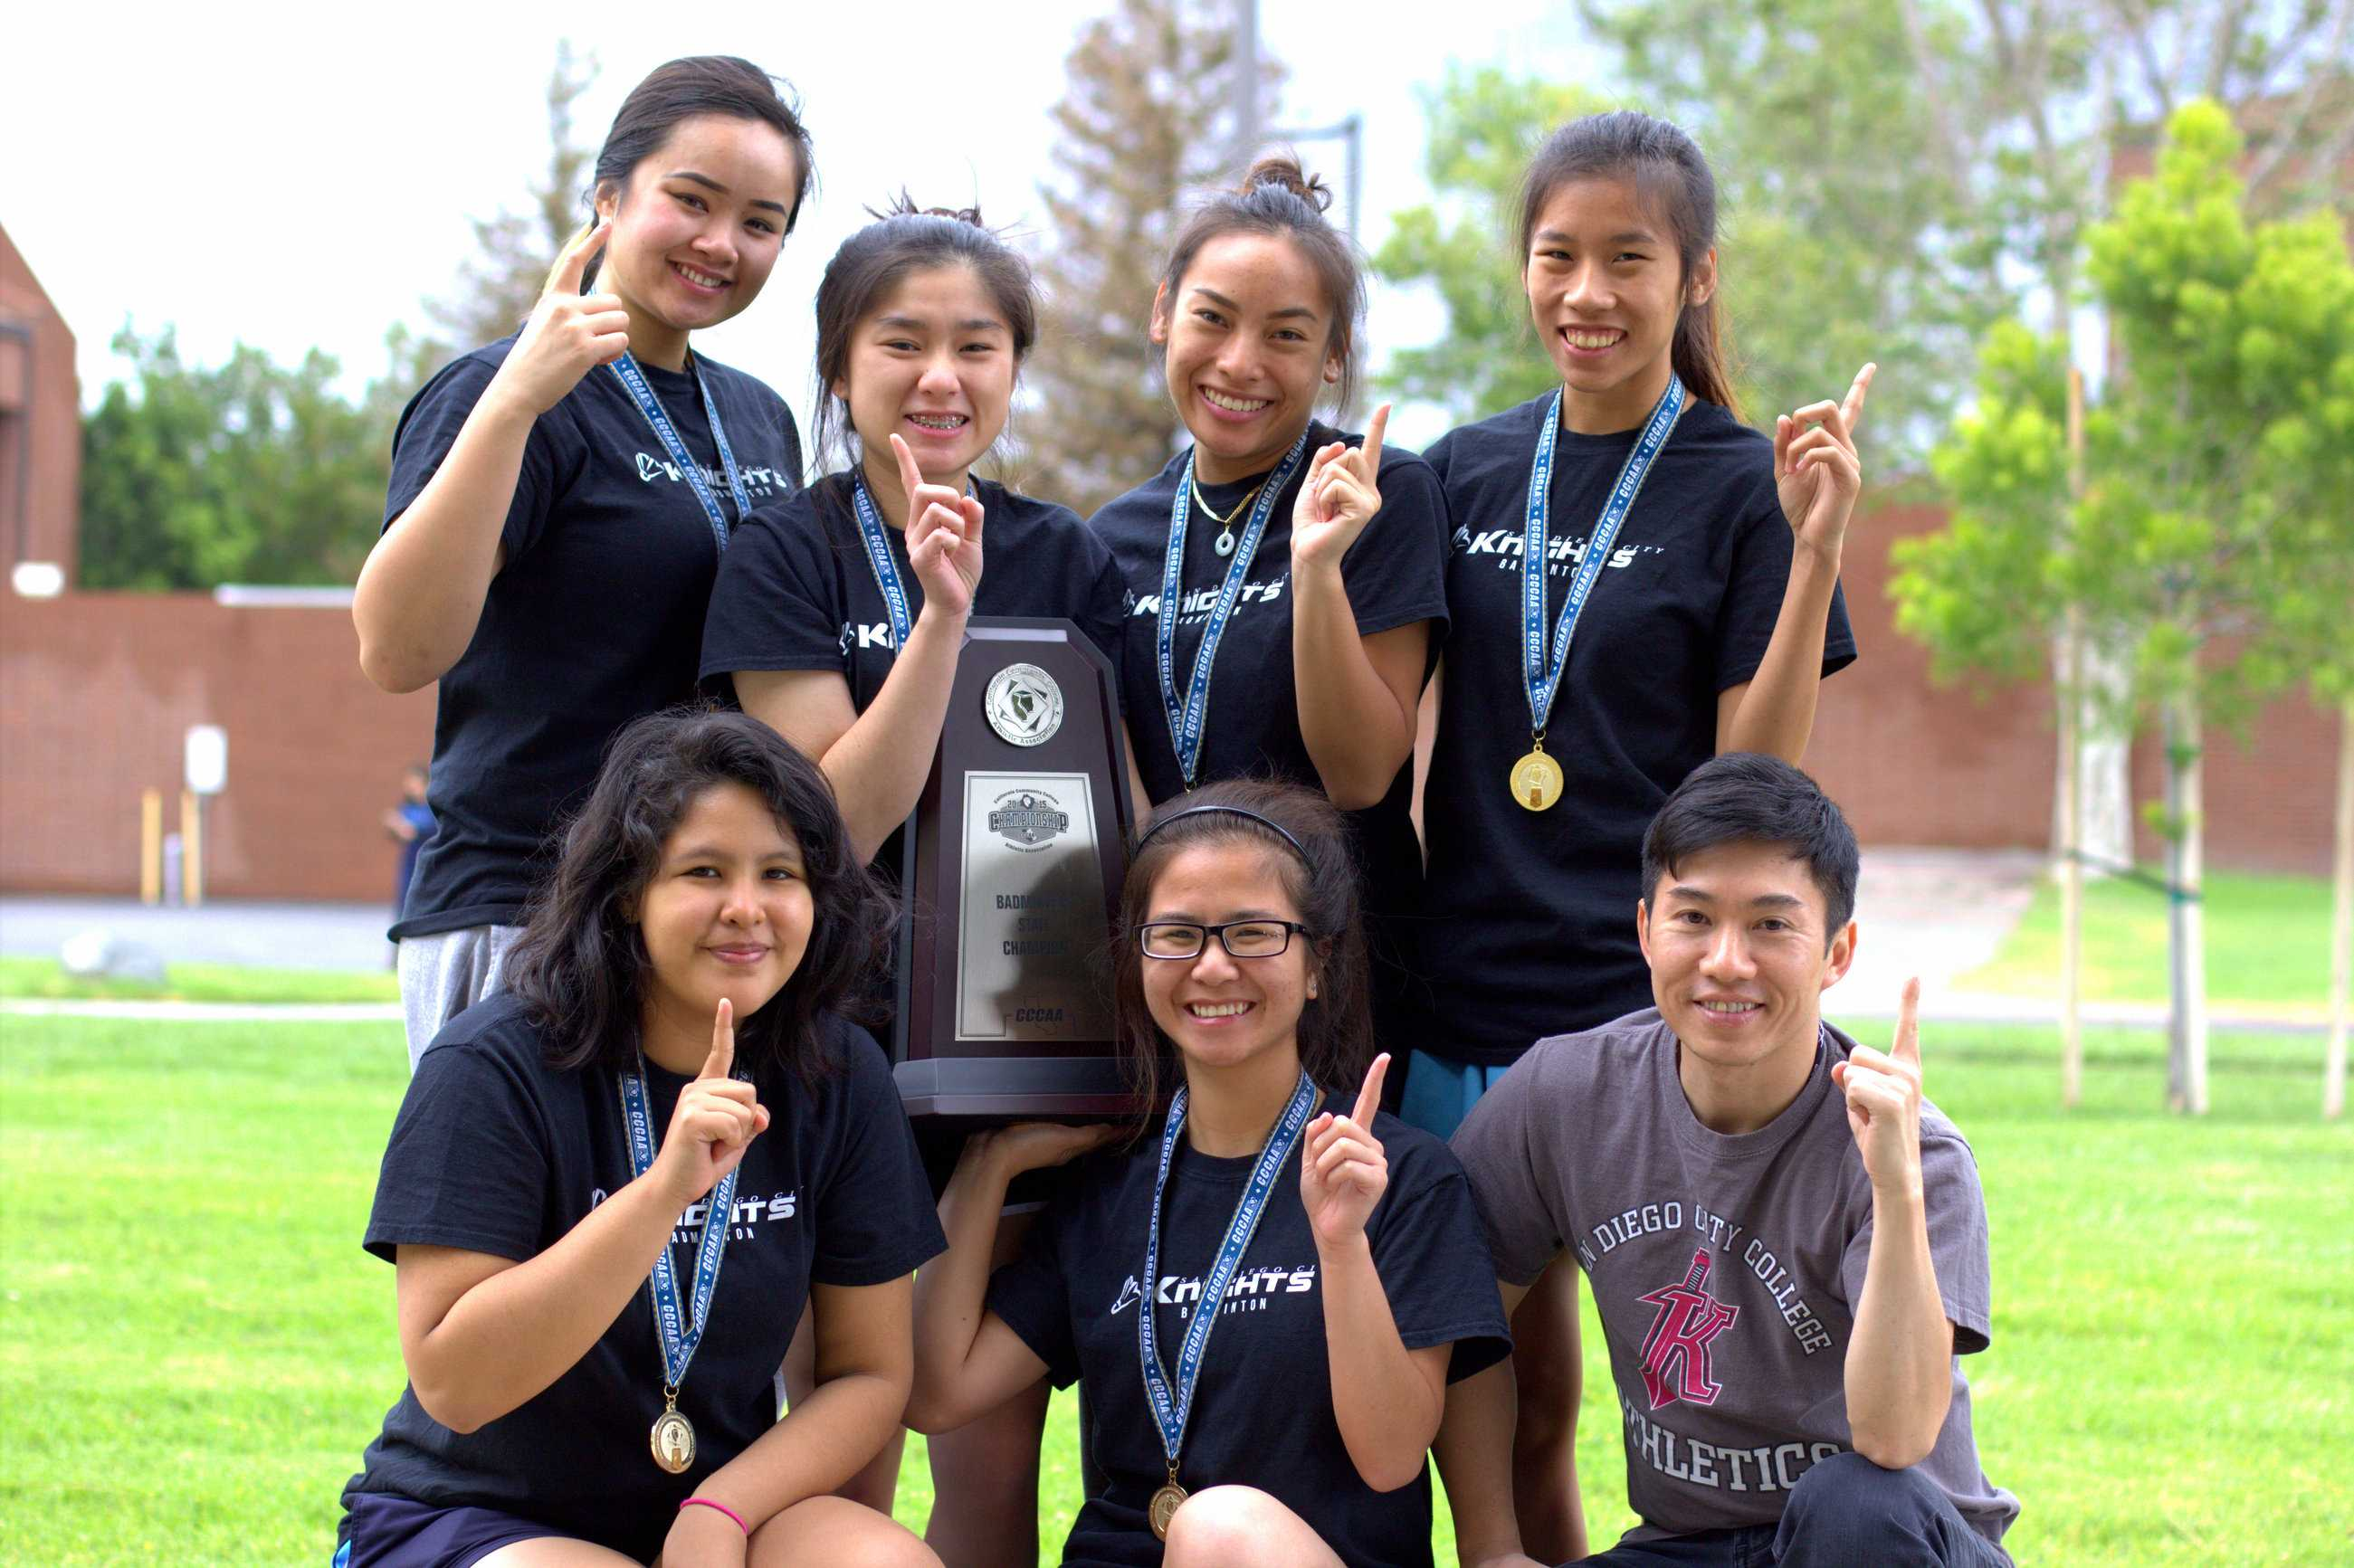 The 2015 City College badminton team poses for a team photo on May 8 at Irvine Valley College. (Top left to bottom right) Sophomores Cassandra Ka, Trinh Lang, Gina Niph, freshmen Thao Le, Shessira Paredes, Margaret Do and Head Coach Son Nguyen. Photo credit: David Pradel